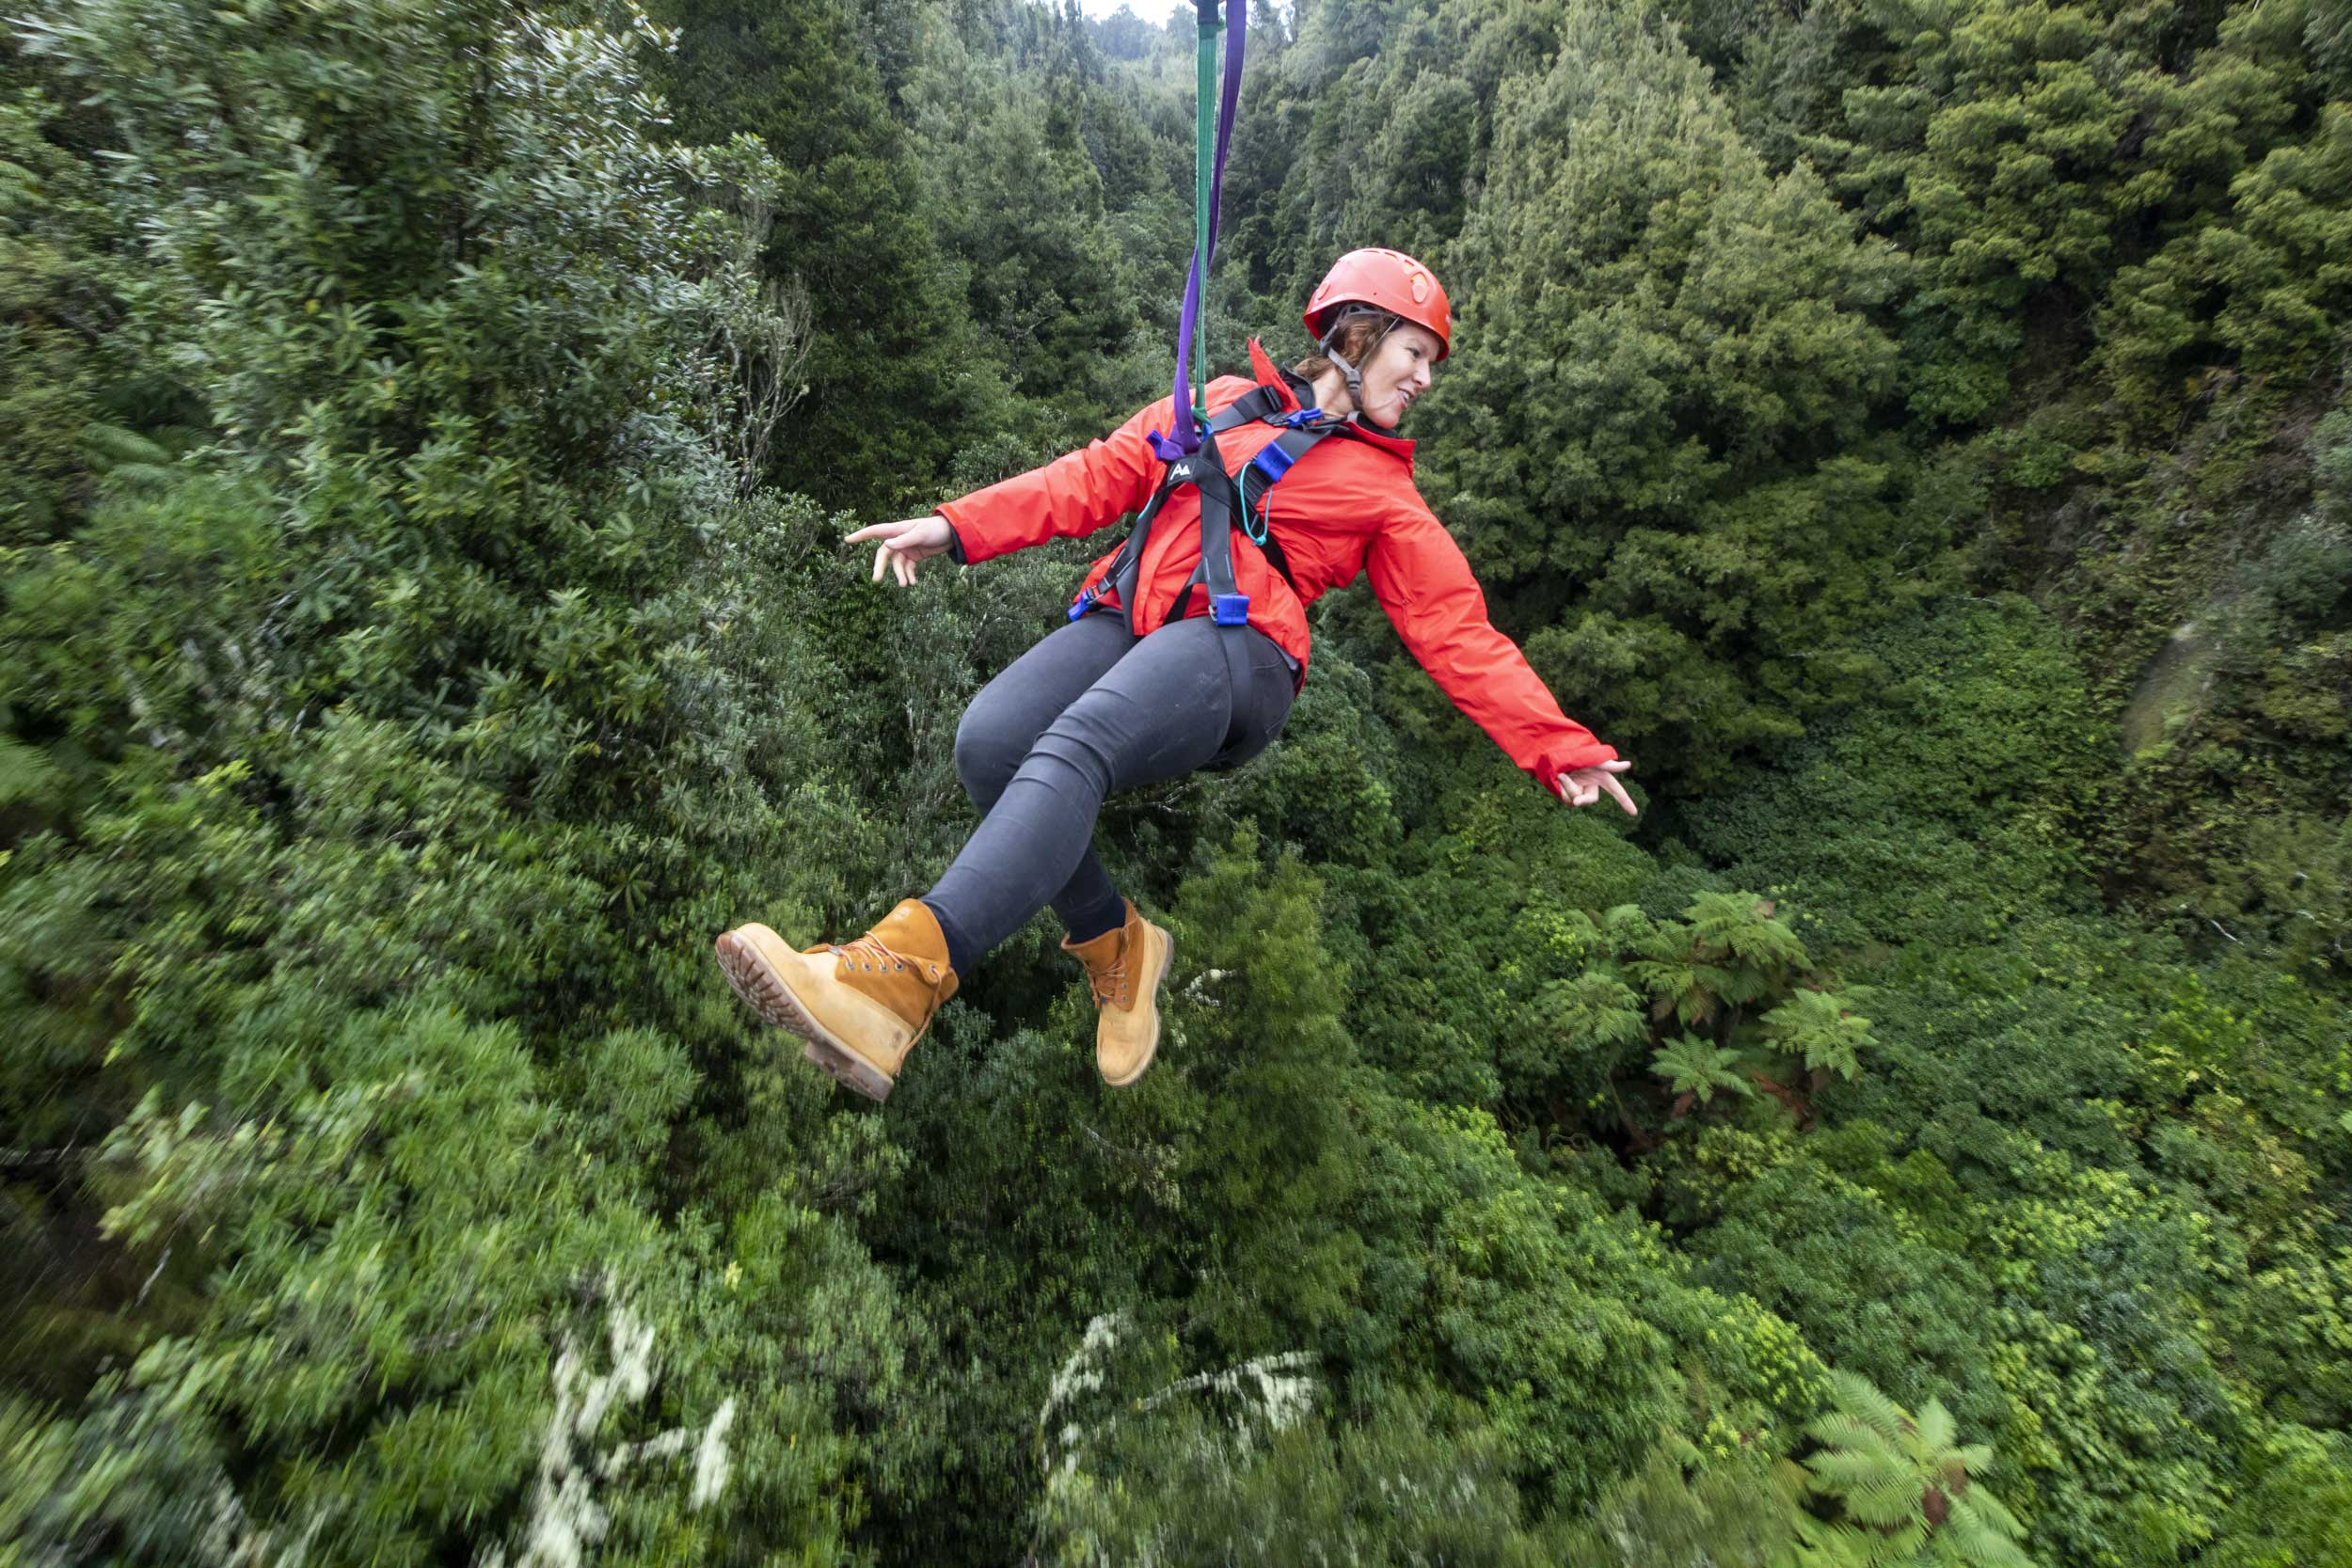 Woman ziplining backwards high above treetops, Rotorua